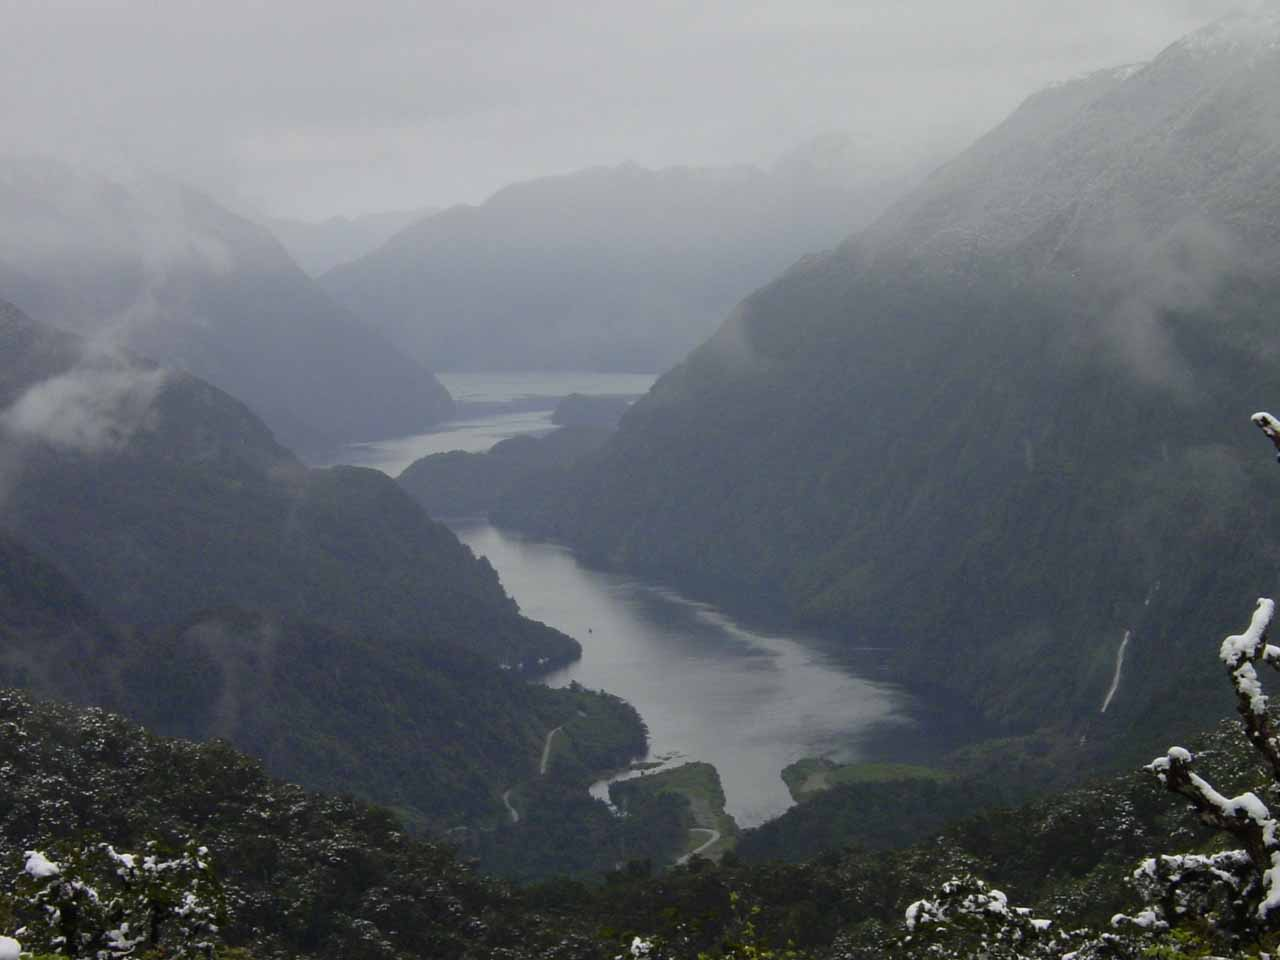 This was the view of the Deep Cove of Doubtful Sound from Wilmot Pass with Helena Falls on the far right